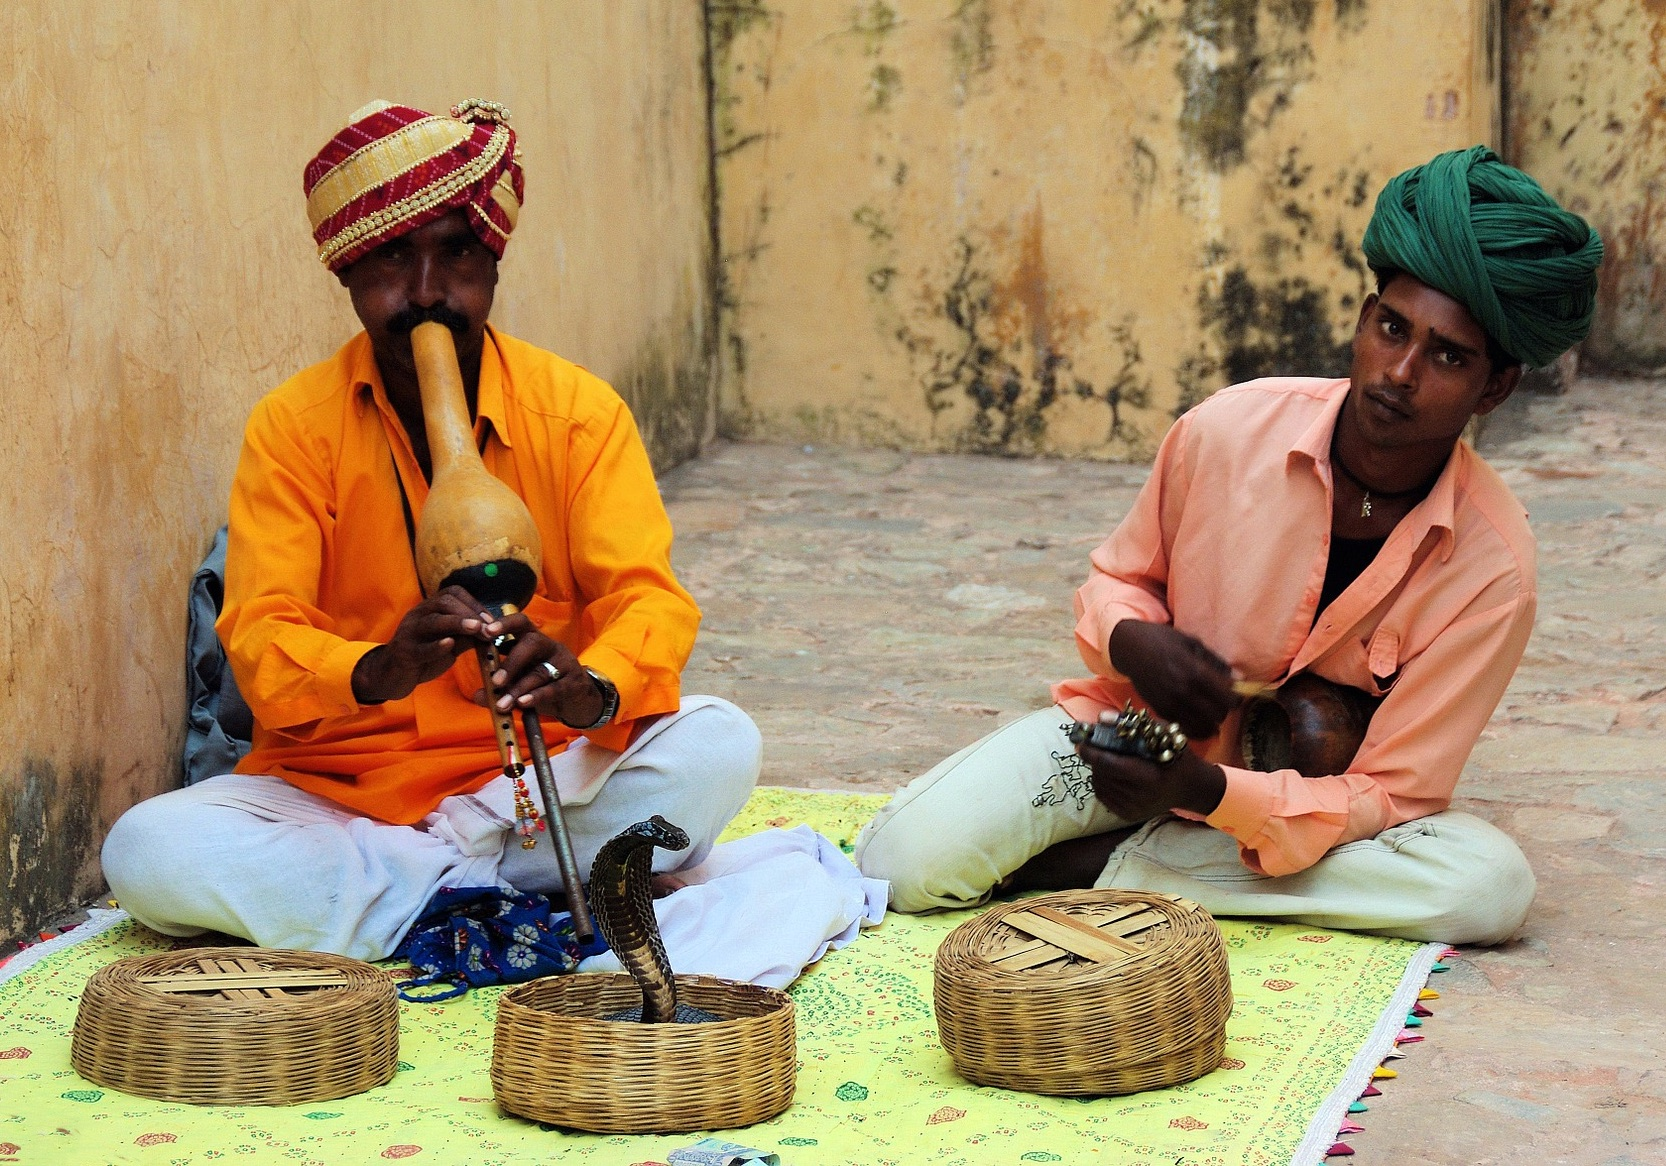 snake charmers and a snake